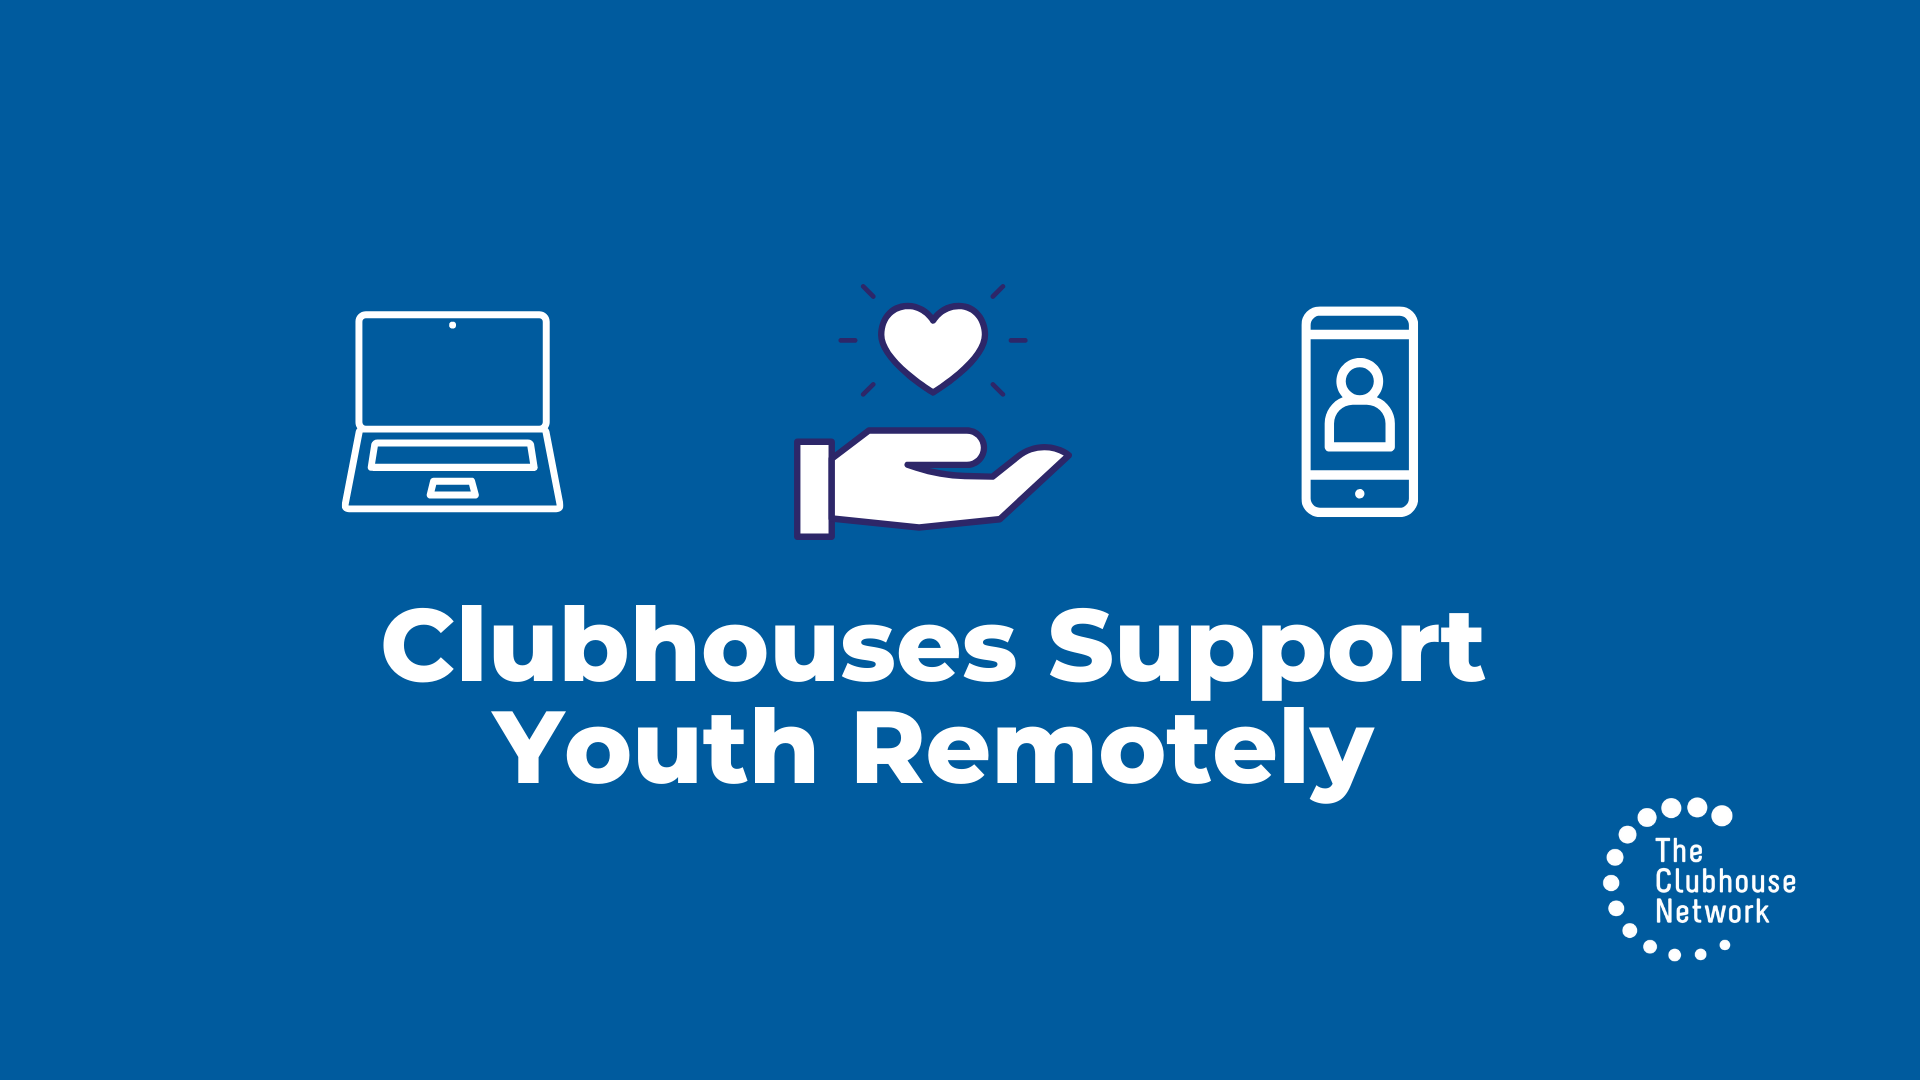 Clubhouses Support Youth Remotely